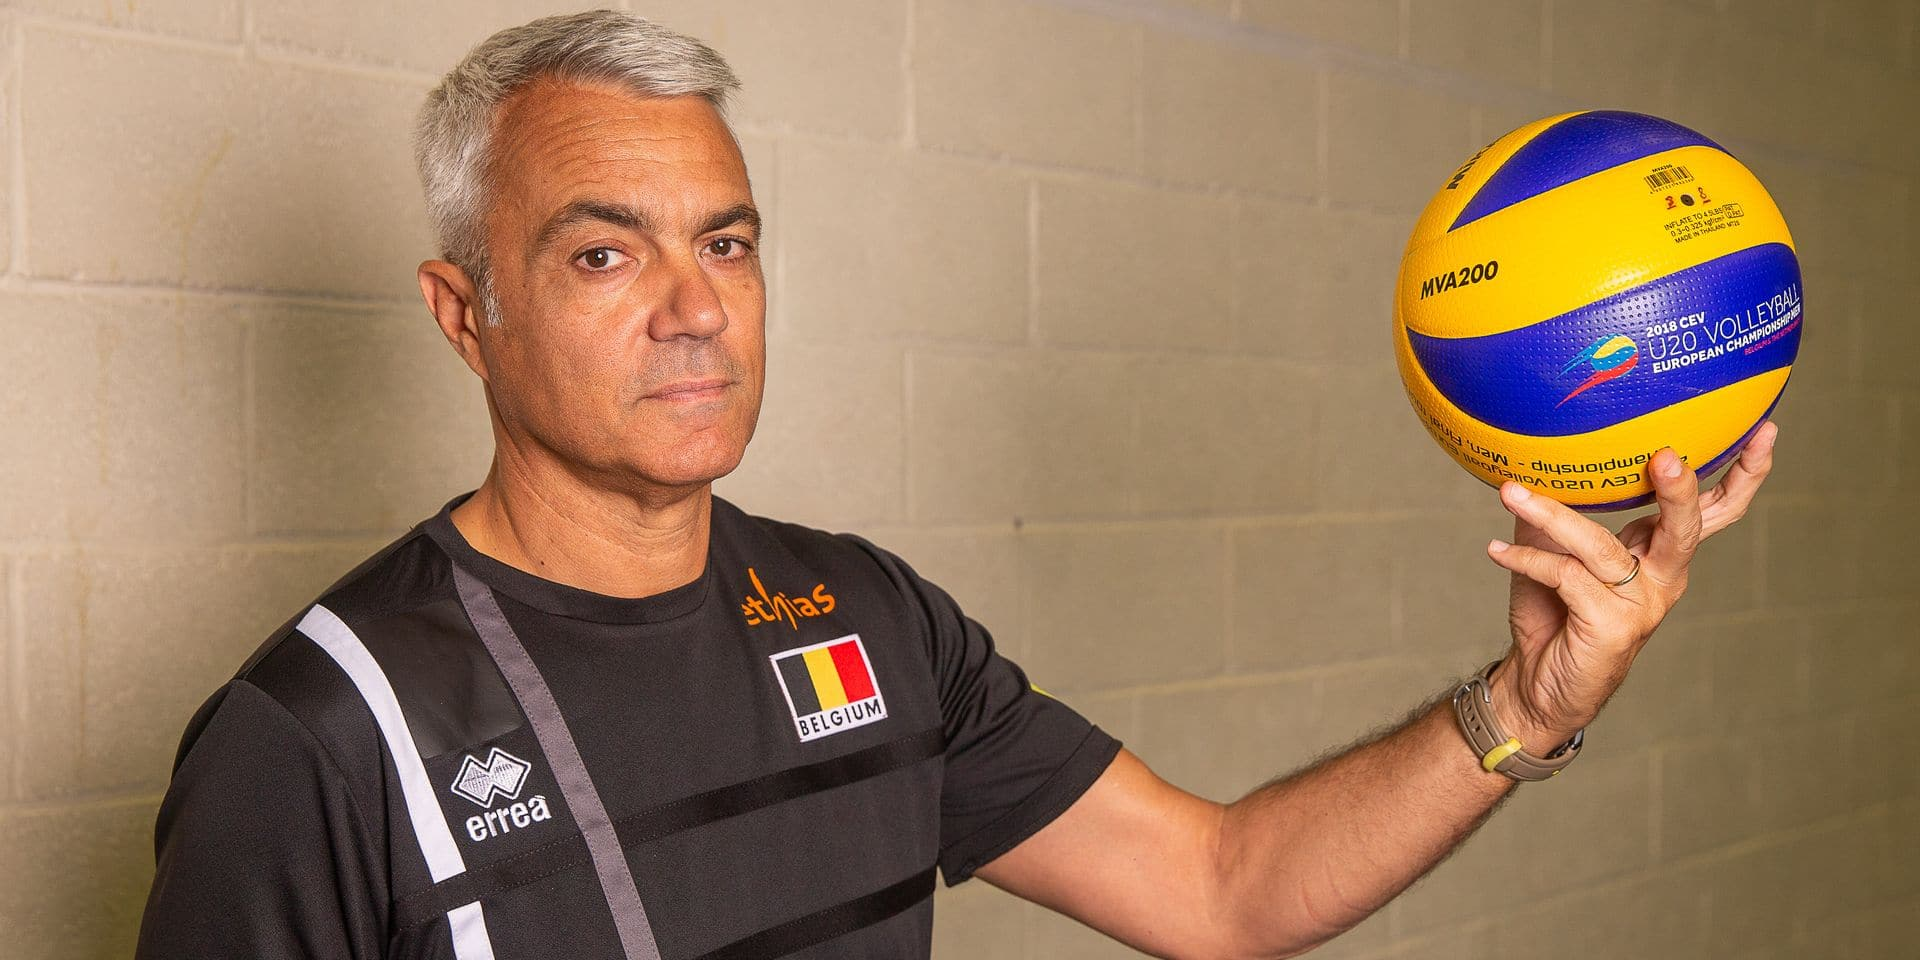 Andrea Anastasi Facebook volley-ball: anastasi quitte les red dragons - dh les sports+